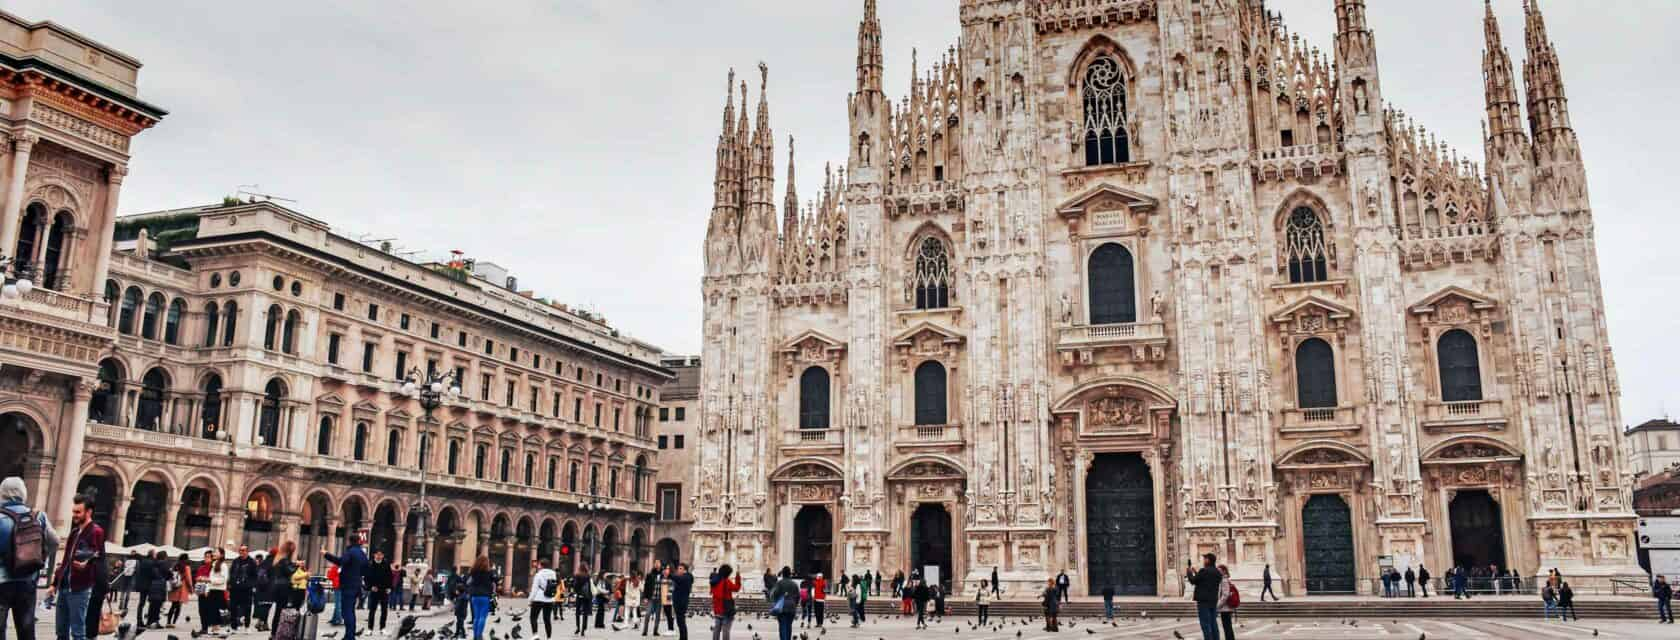 A view of the duomo in Milan on a cloudy day.